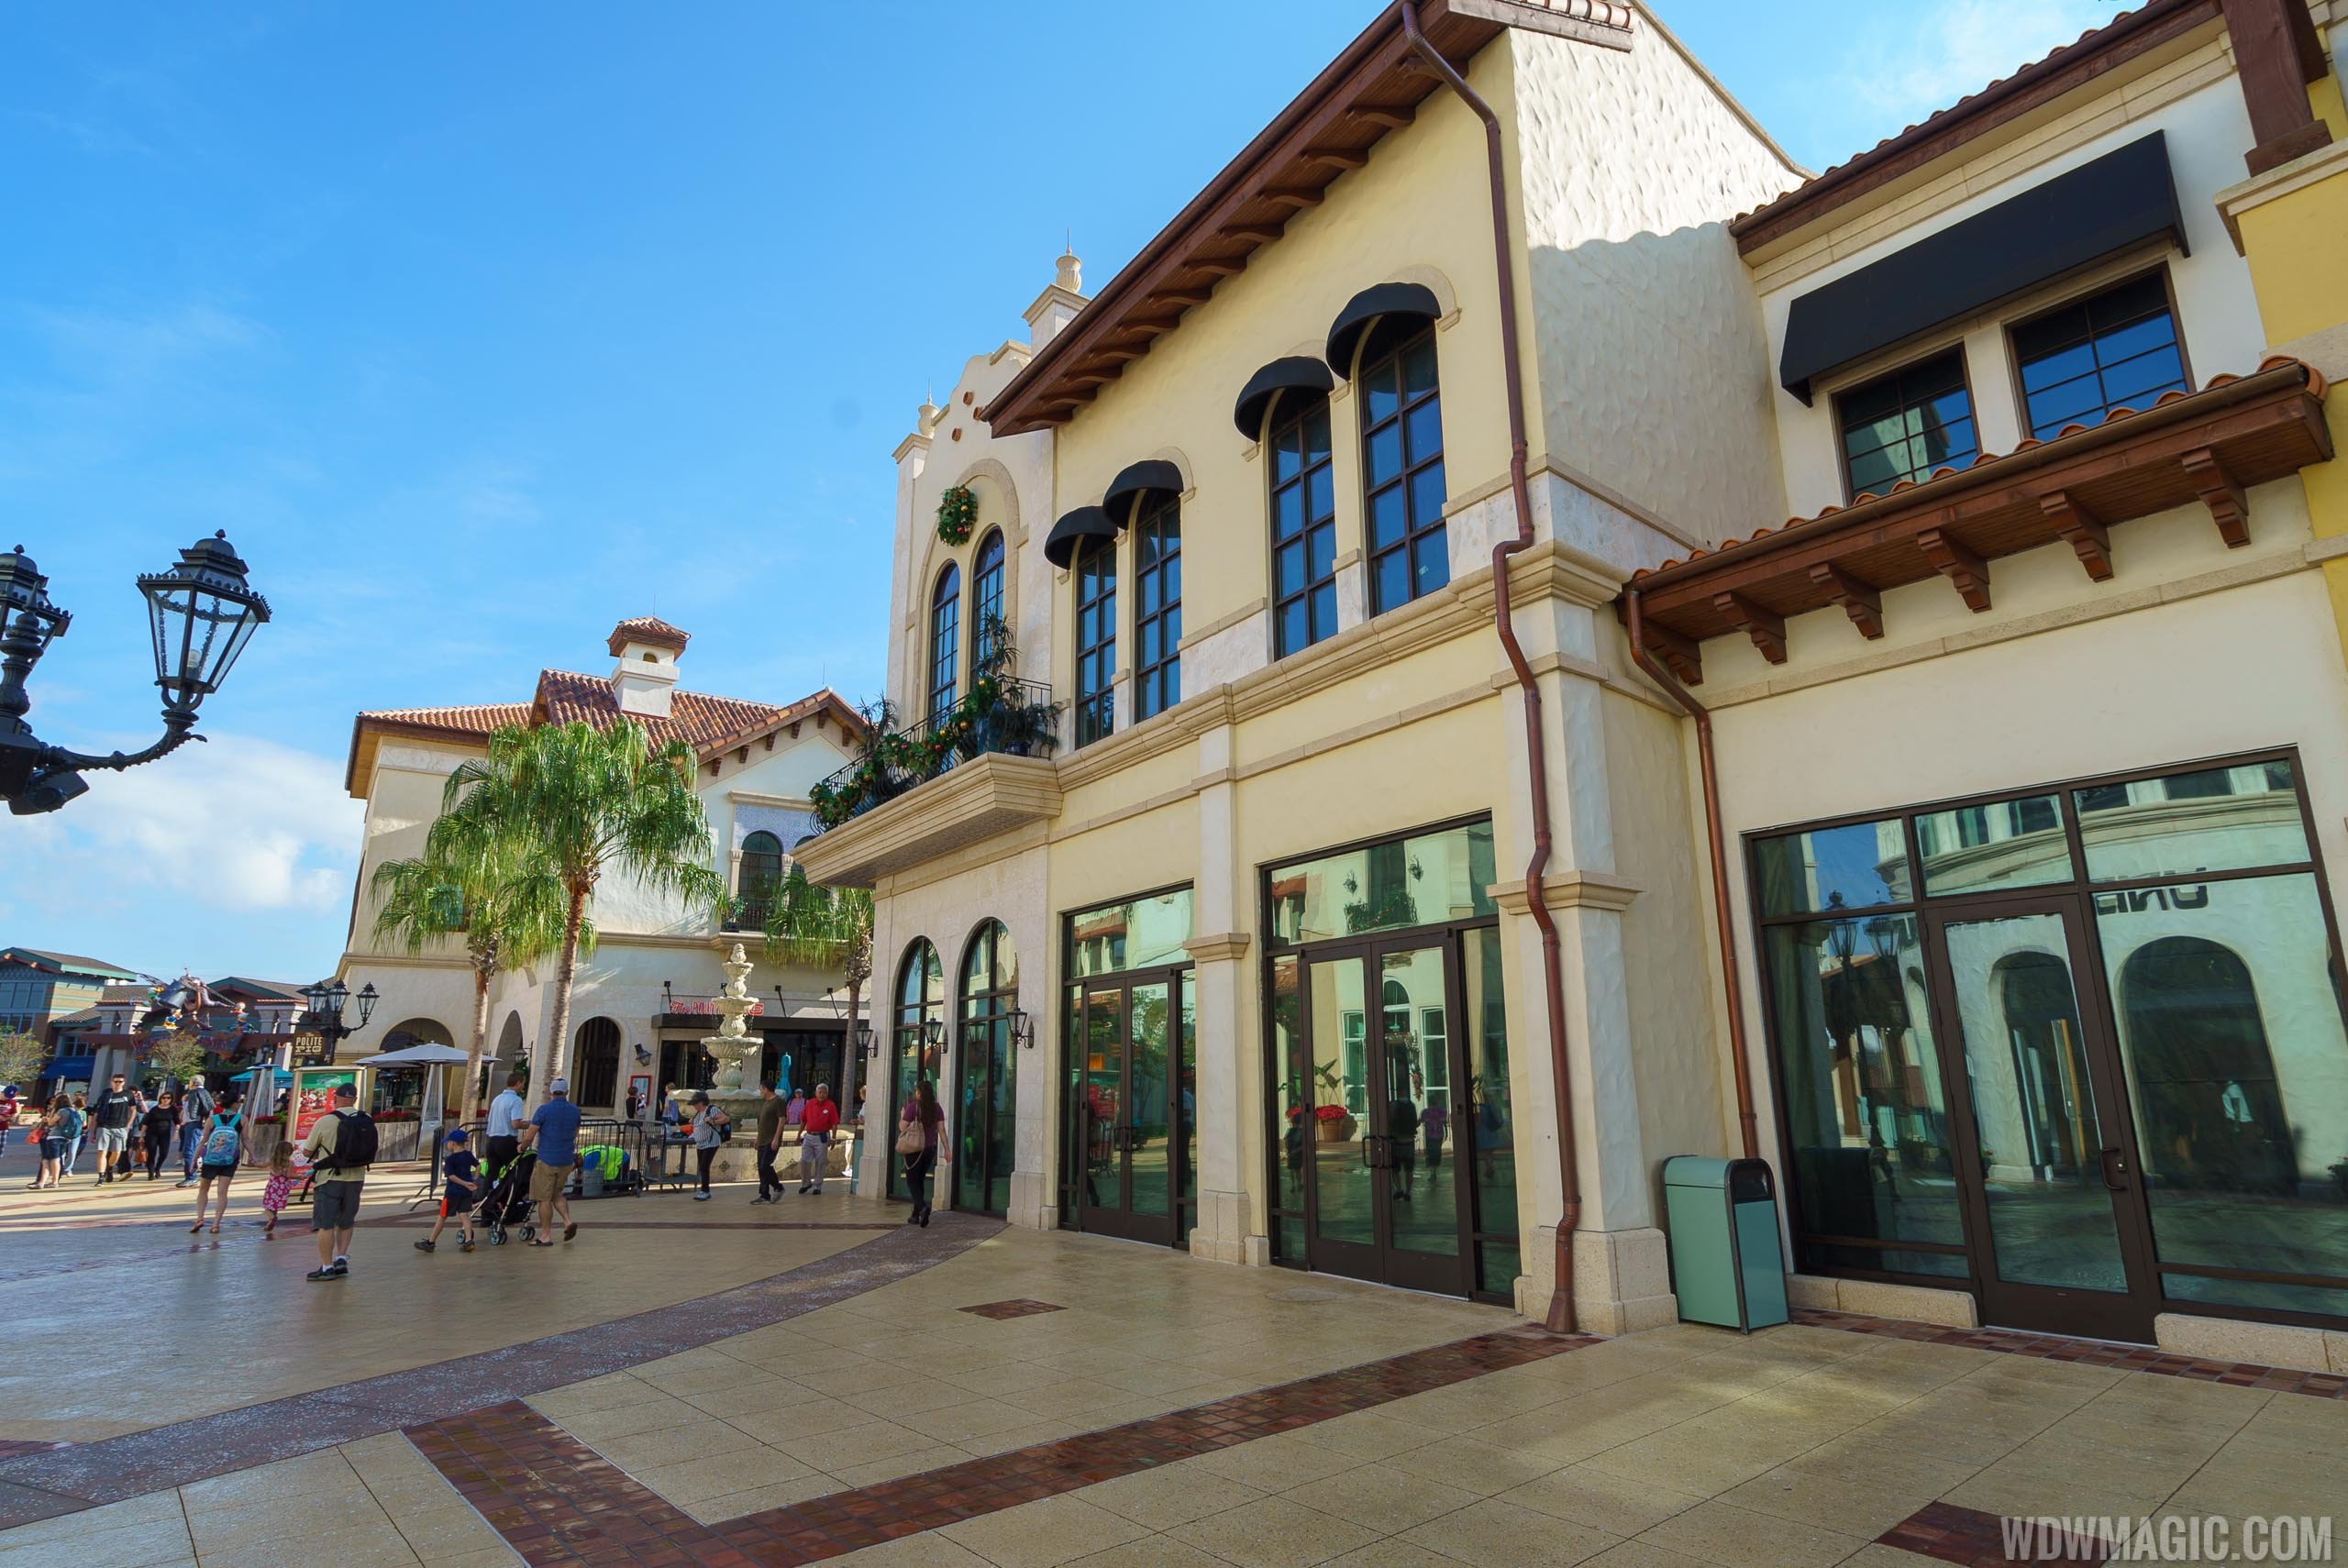 Temporary World of Disney location opening soon in the Town Center